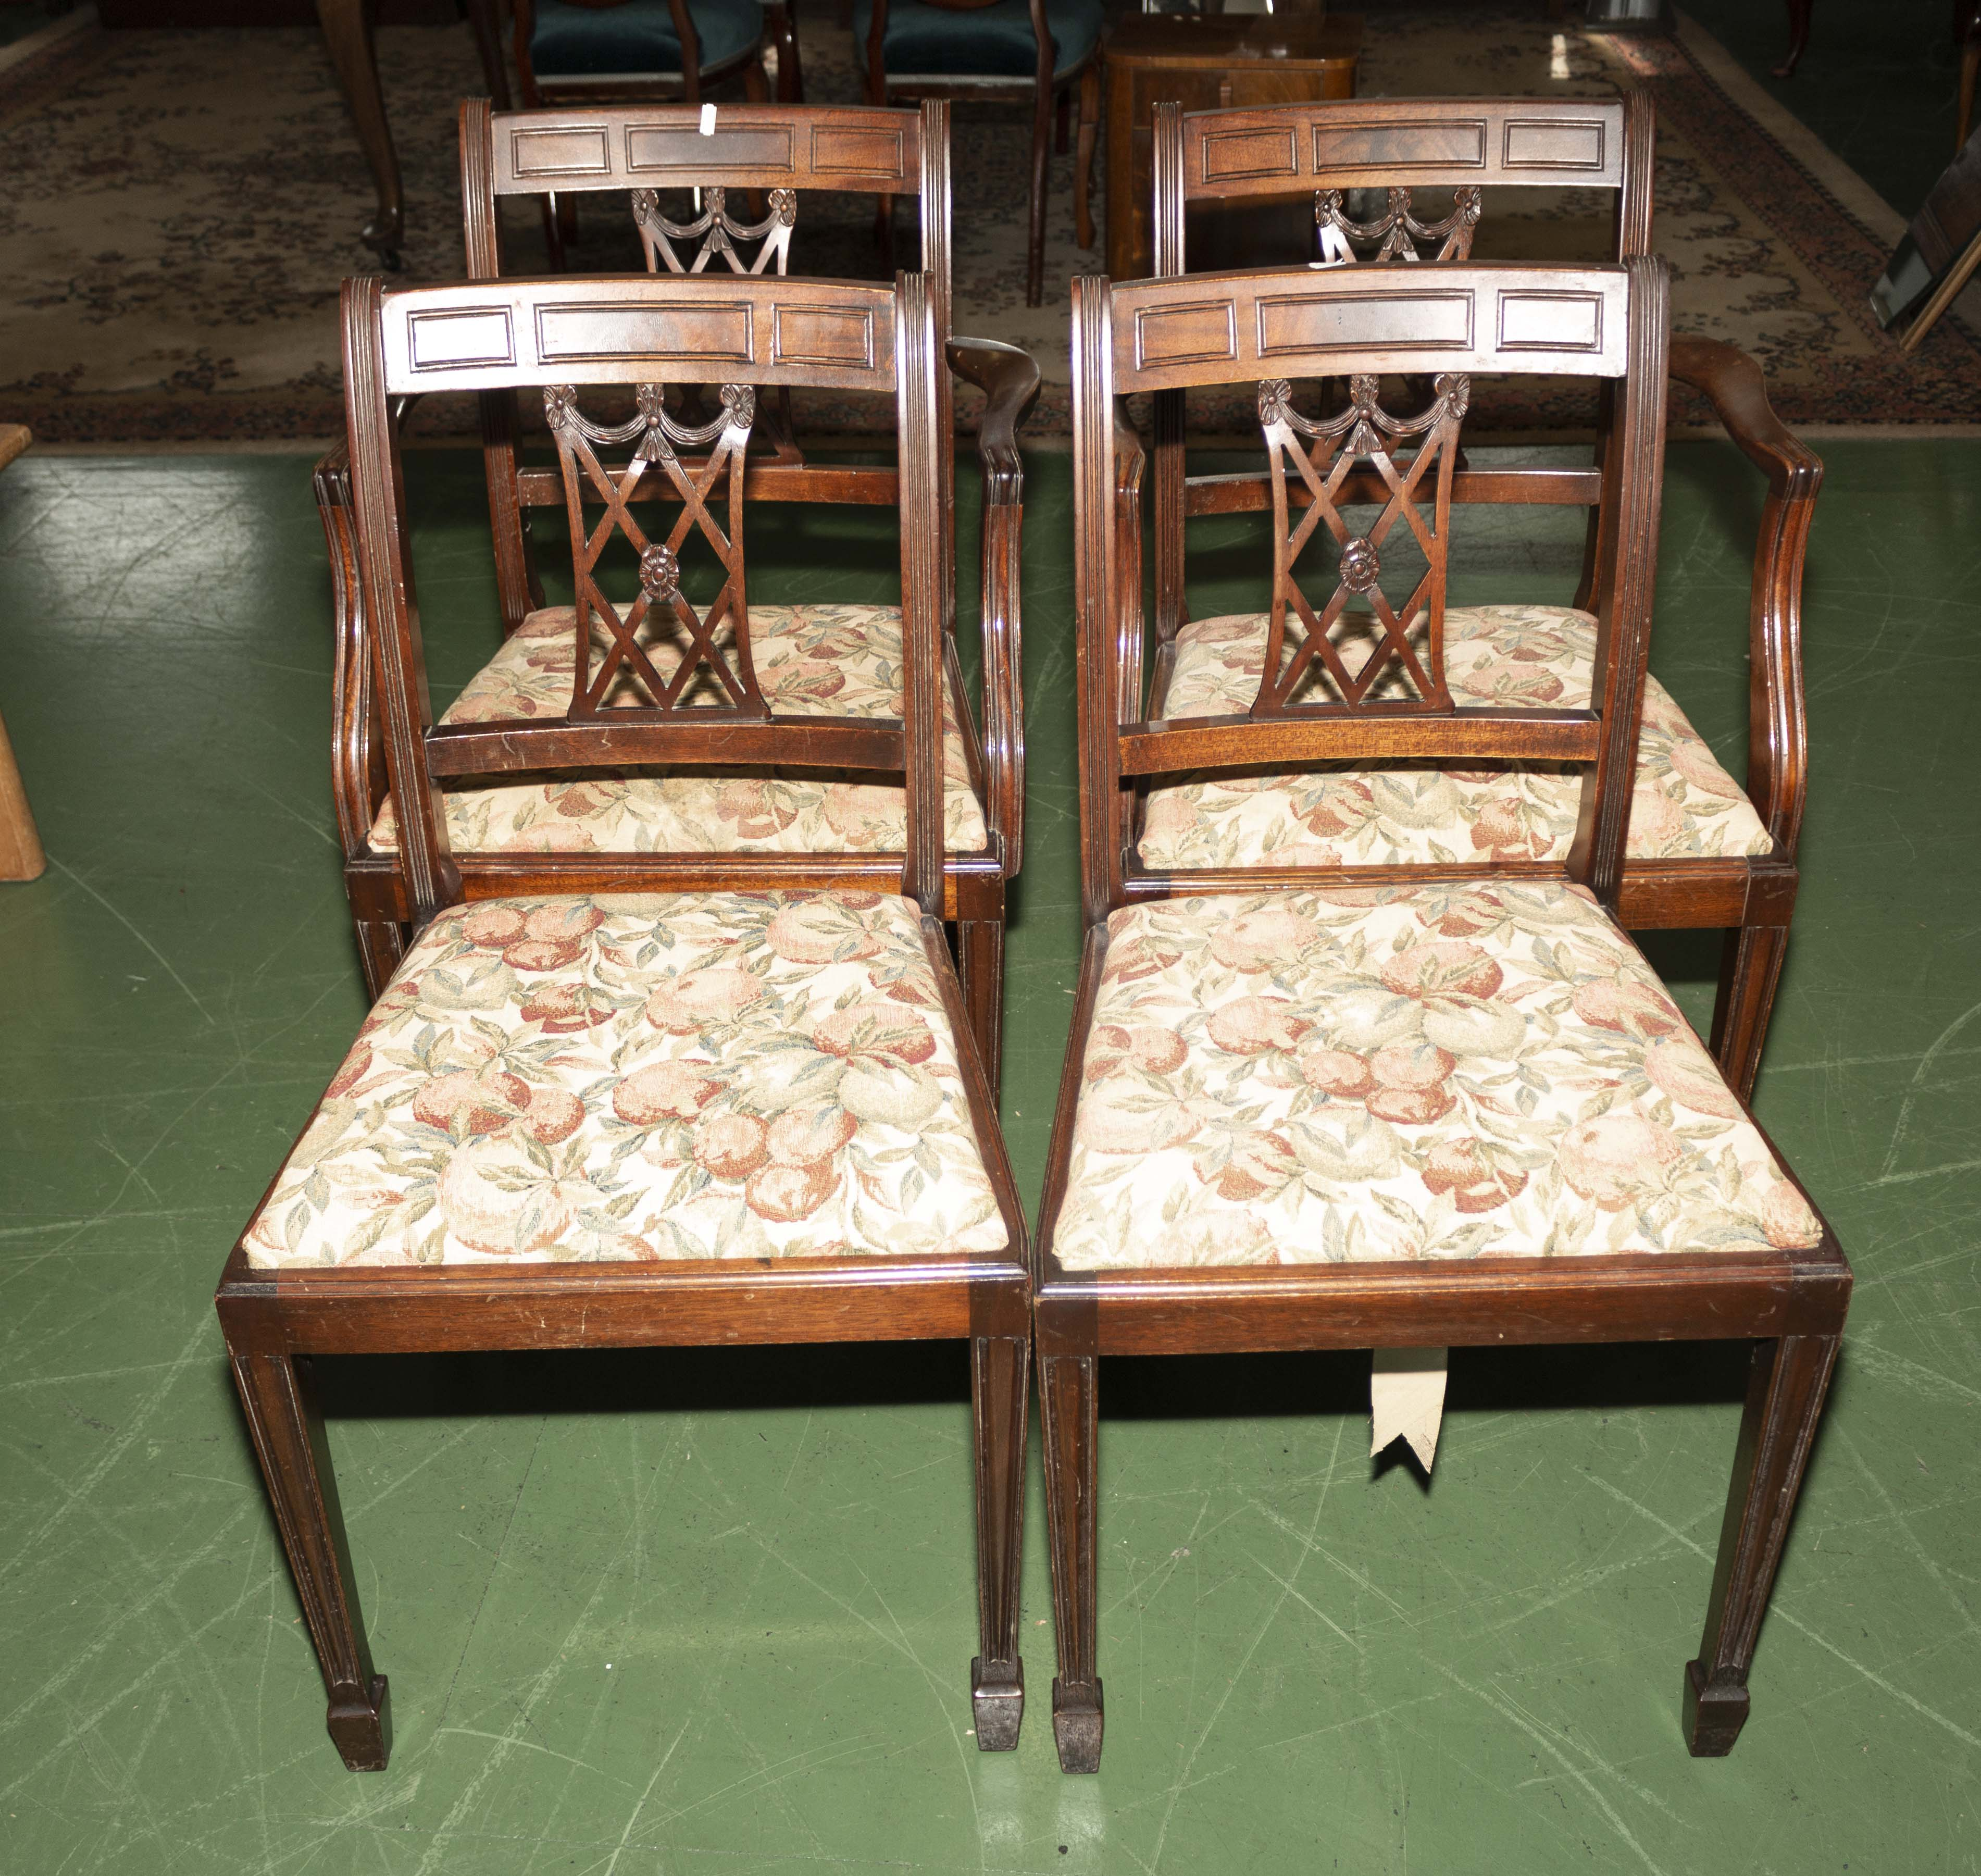 Lot 57 - Two dining chairs and two carvers